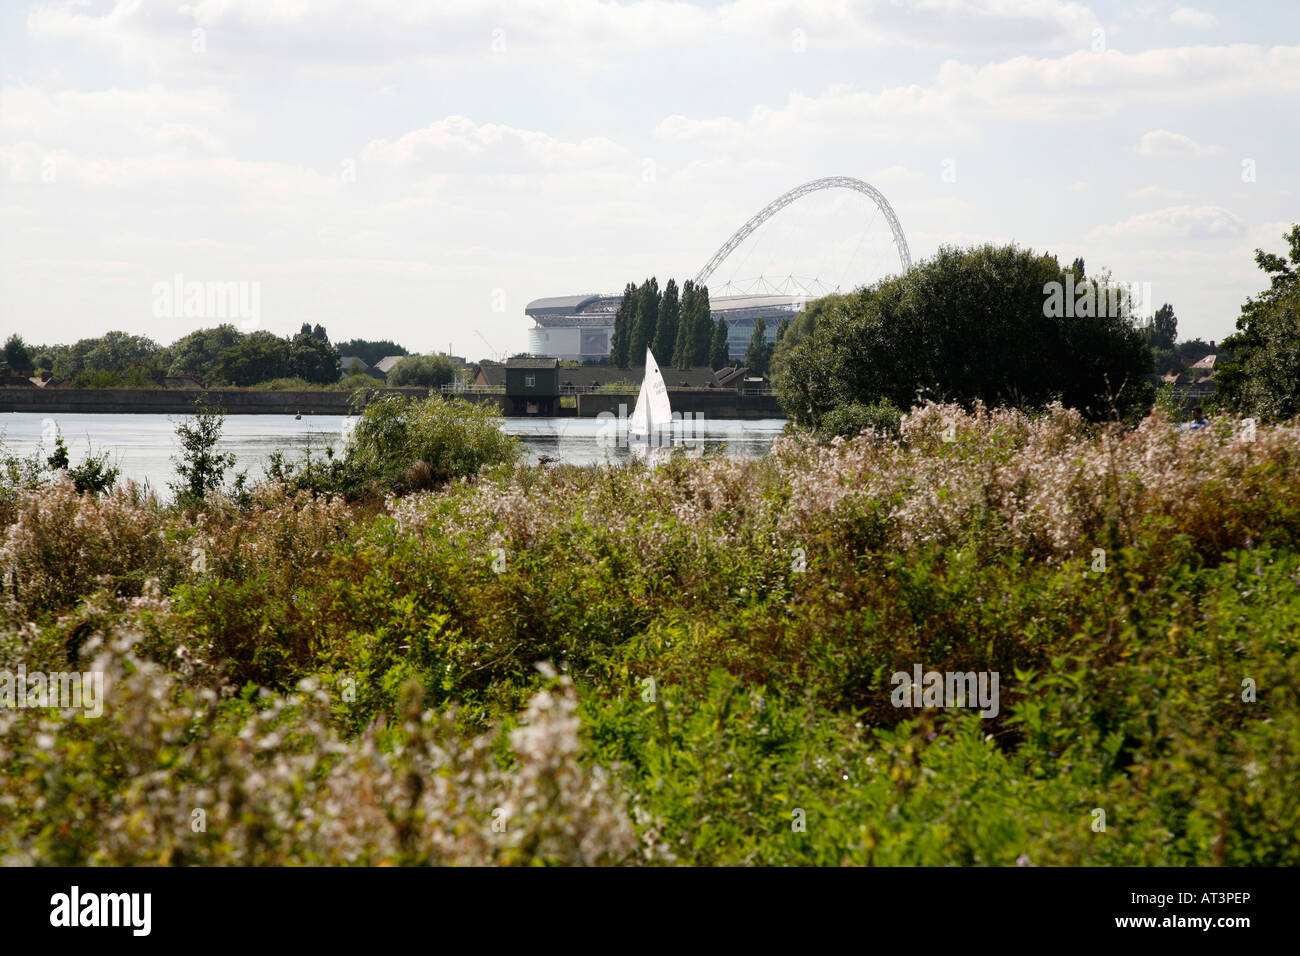 Yacht on Welsh Harp seen in front of Wembley Stadium, London - Stock Image